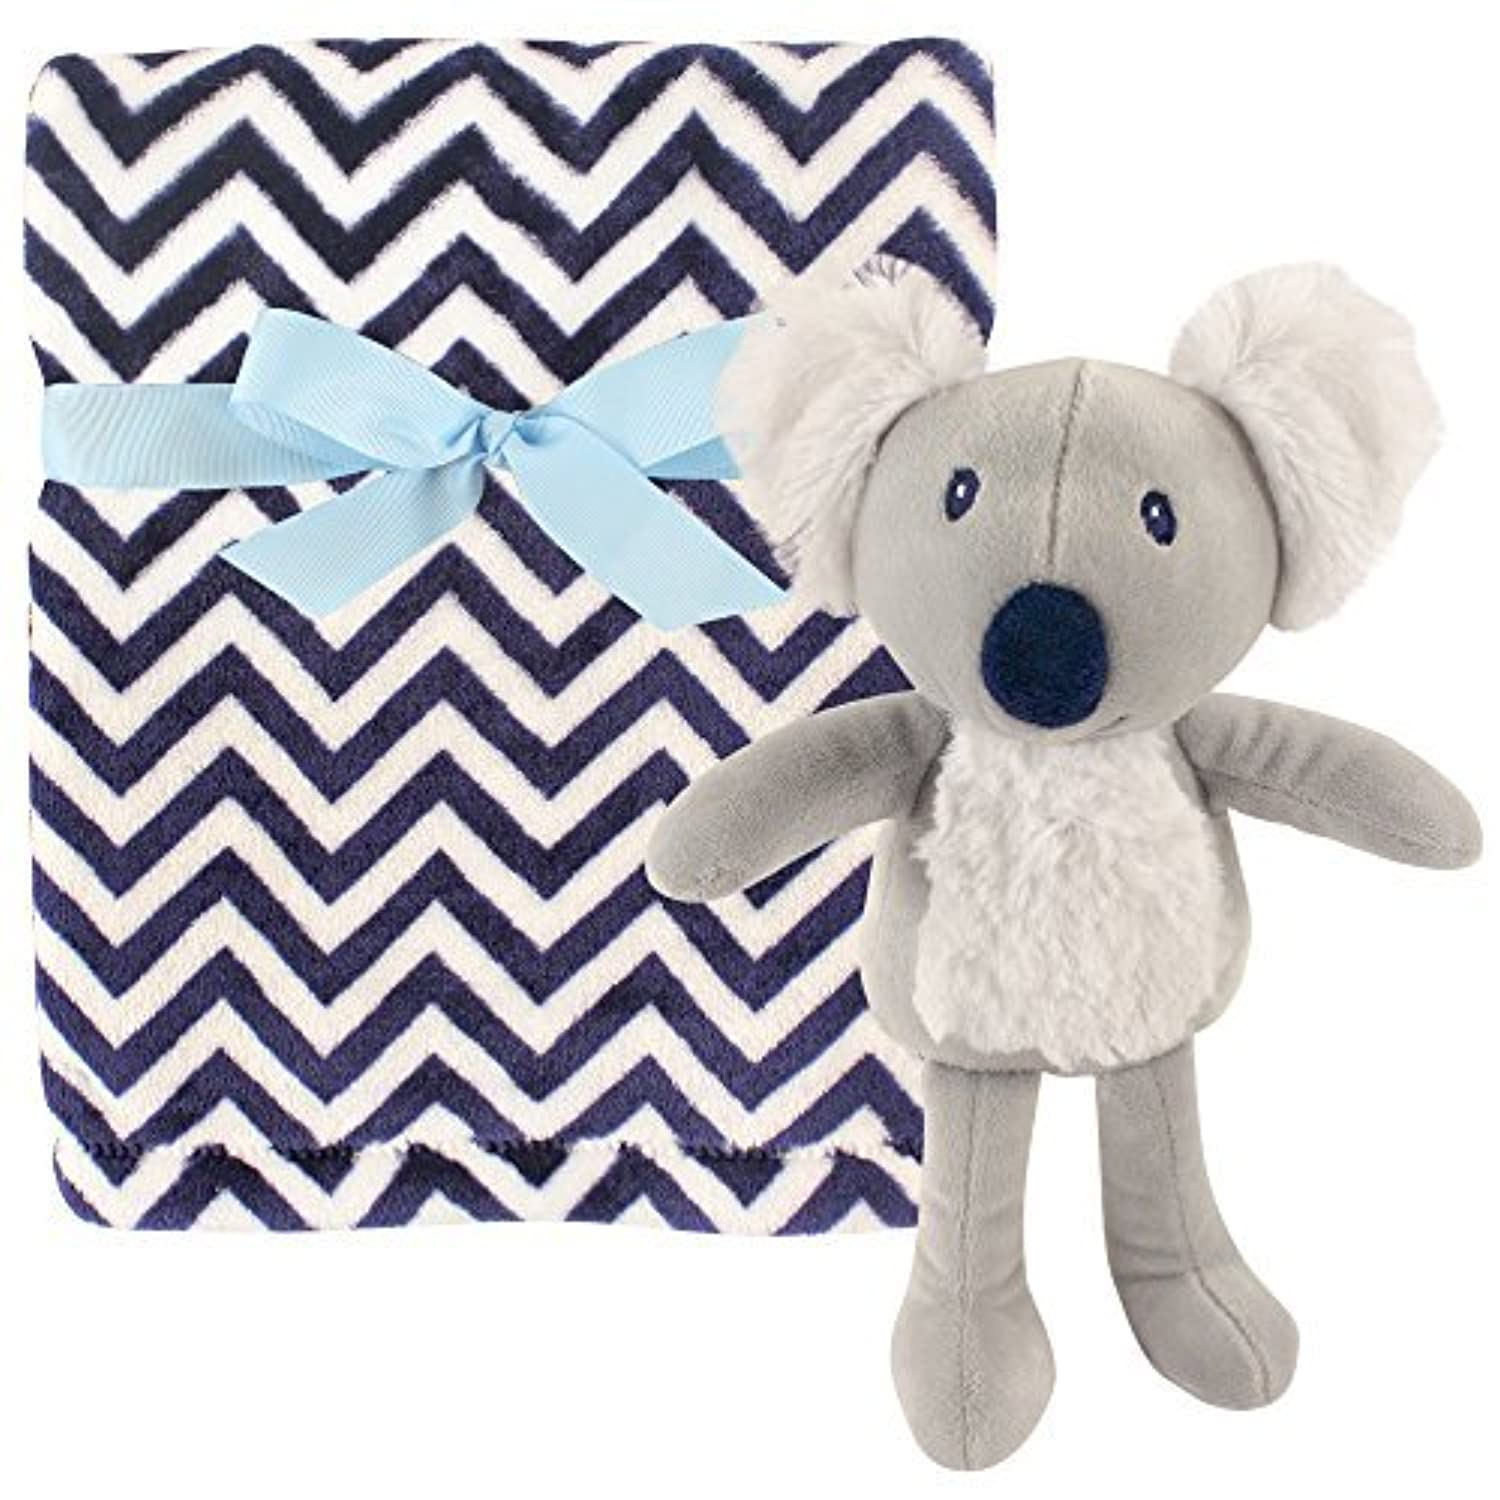 Hudson Baby Plush Blanket & Toy Koala [並行輸入品]